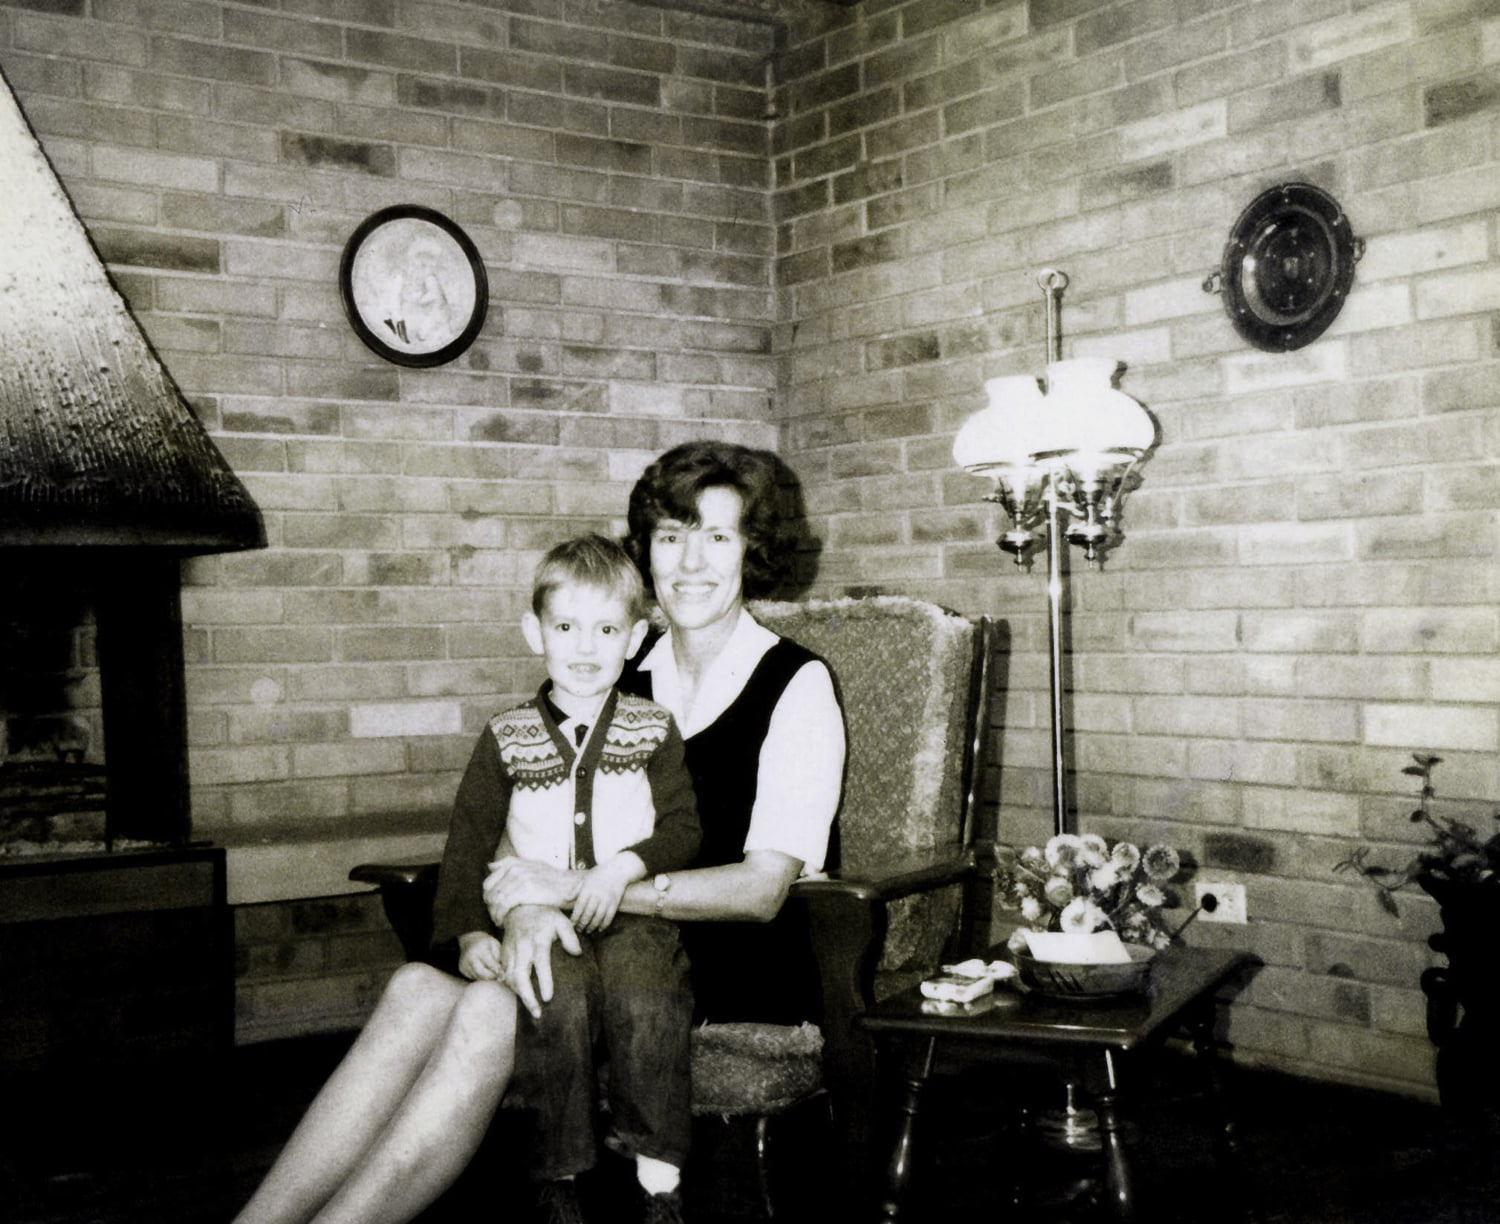 Mom shown here with Joe. This new brother was born in Monterrey, Mexico when I was about 14.